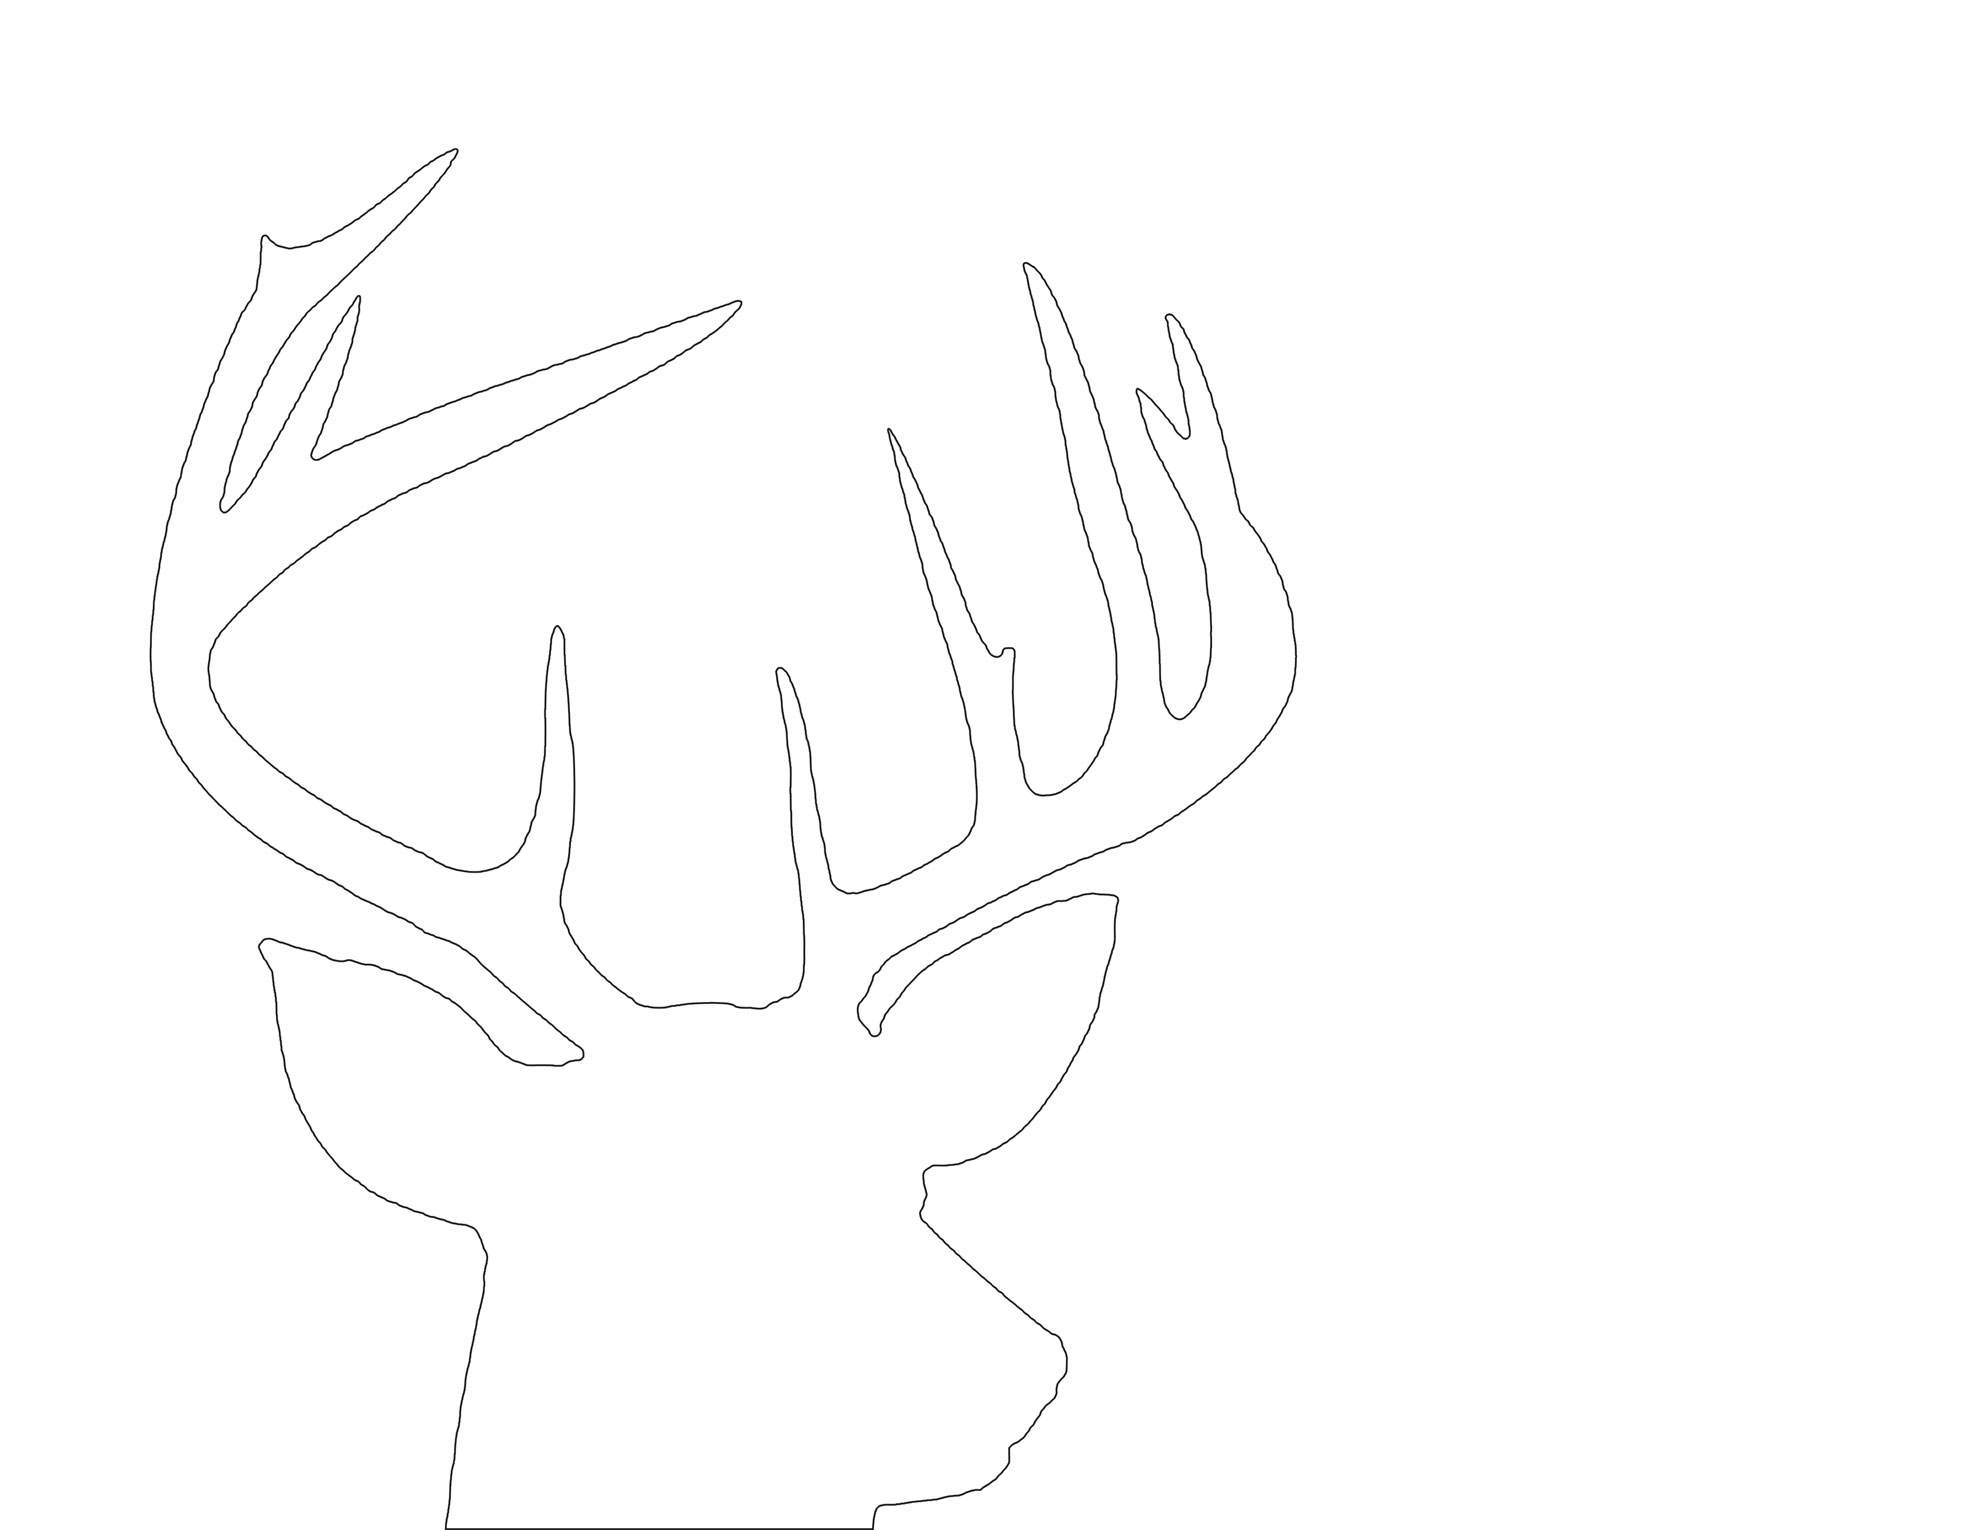 Stupendous image for printable deer head silhouette